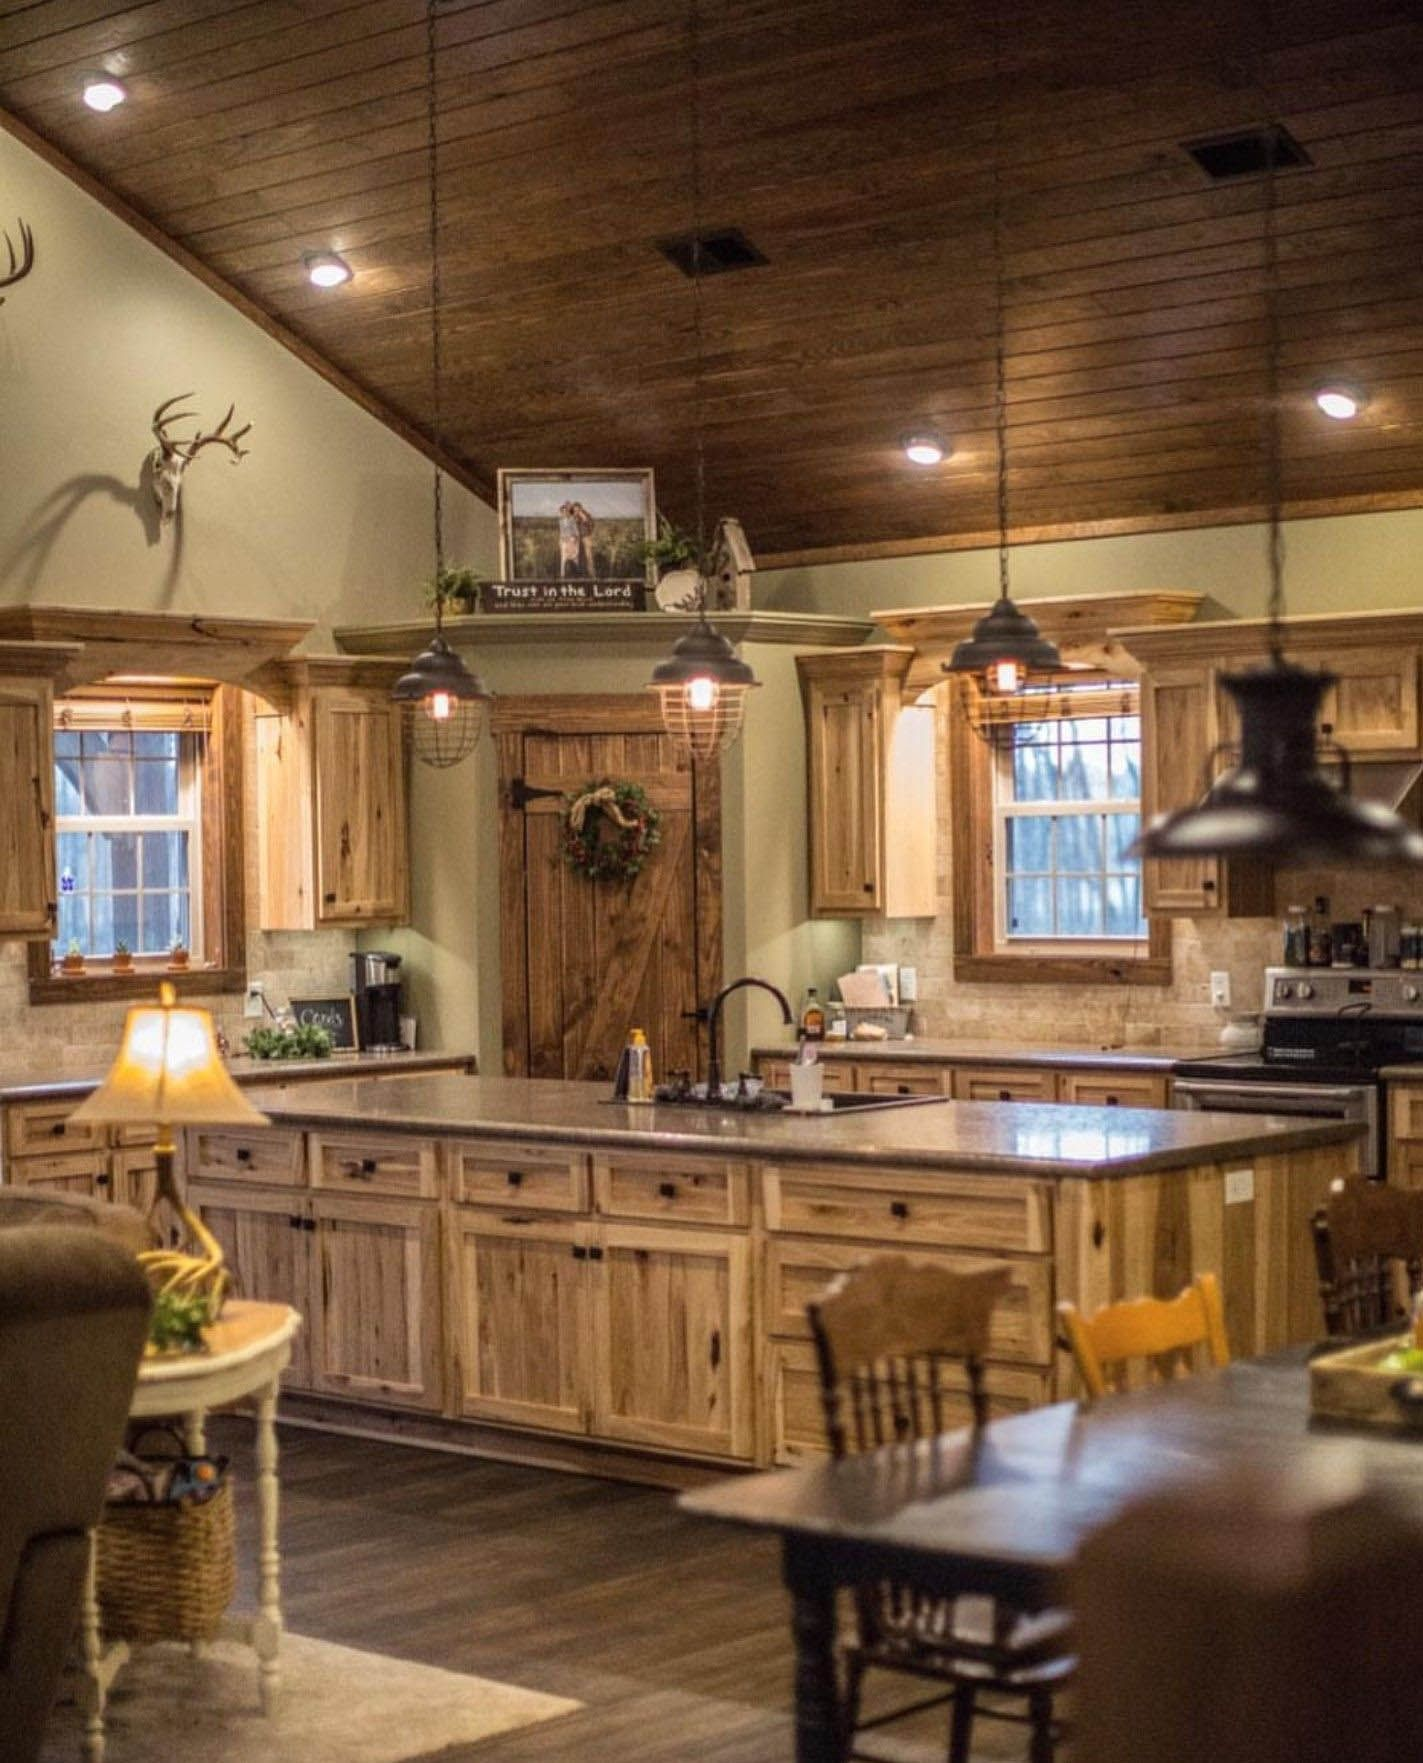 30 Most Popular Rustic Kitchen Ideas You Ll Want To Copy In 2020 Rustic Kitchen Design Kitchen Style Rustic Kitchen Cabinets